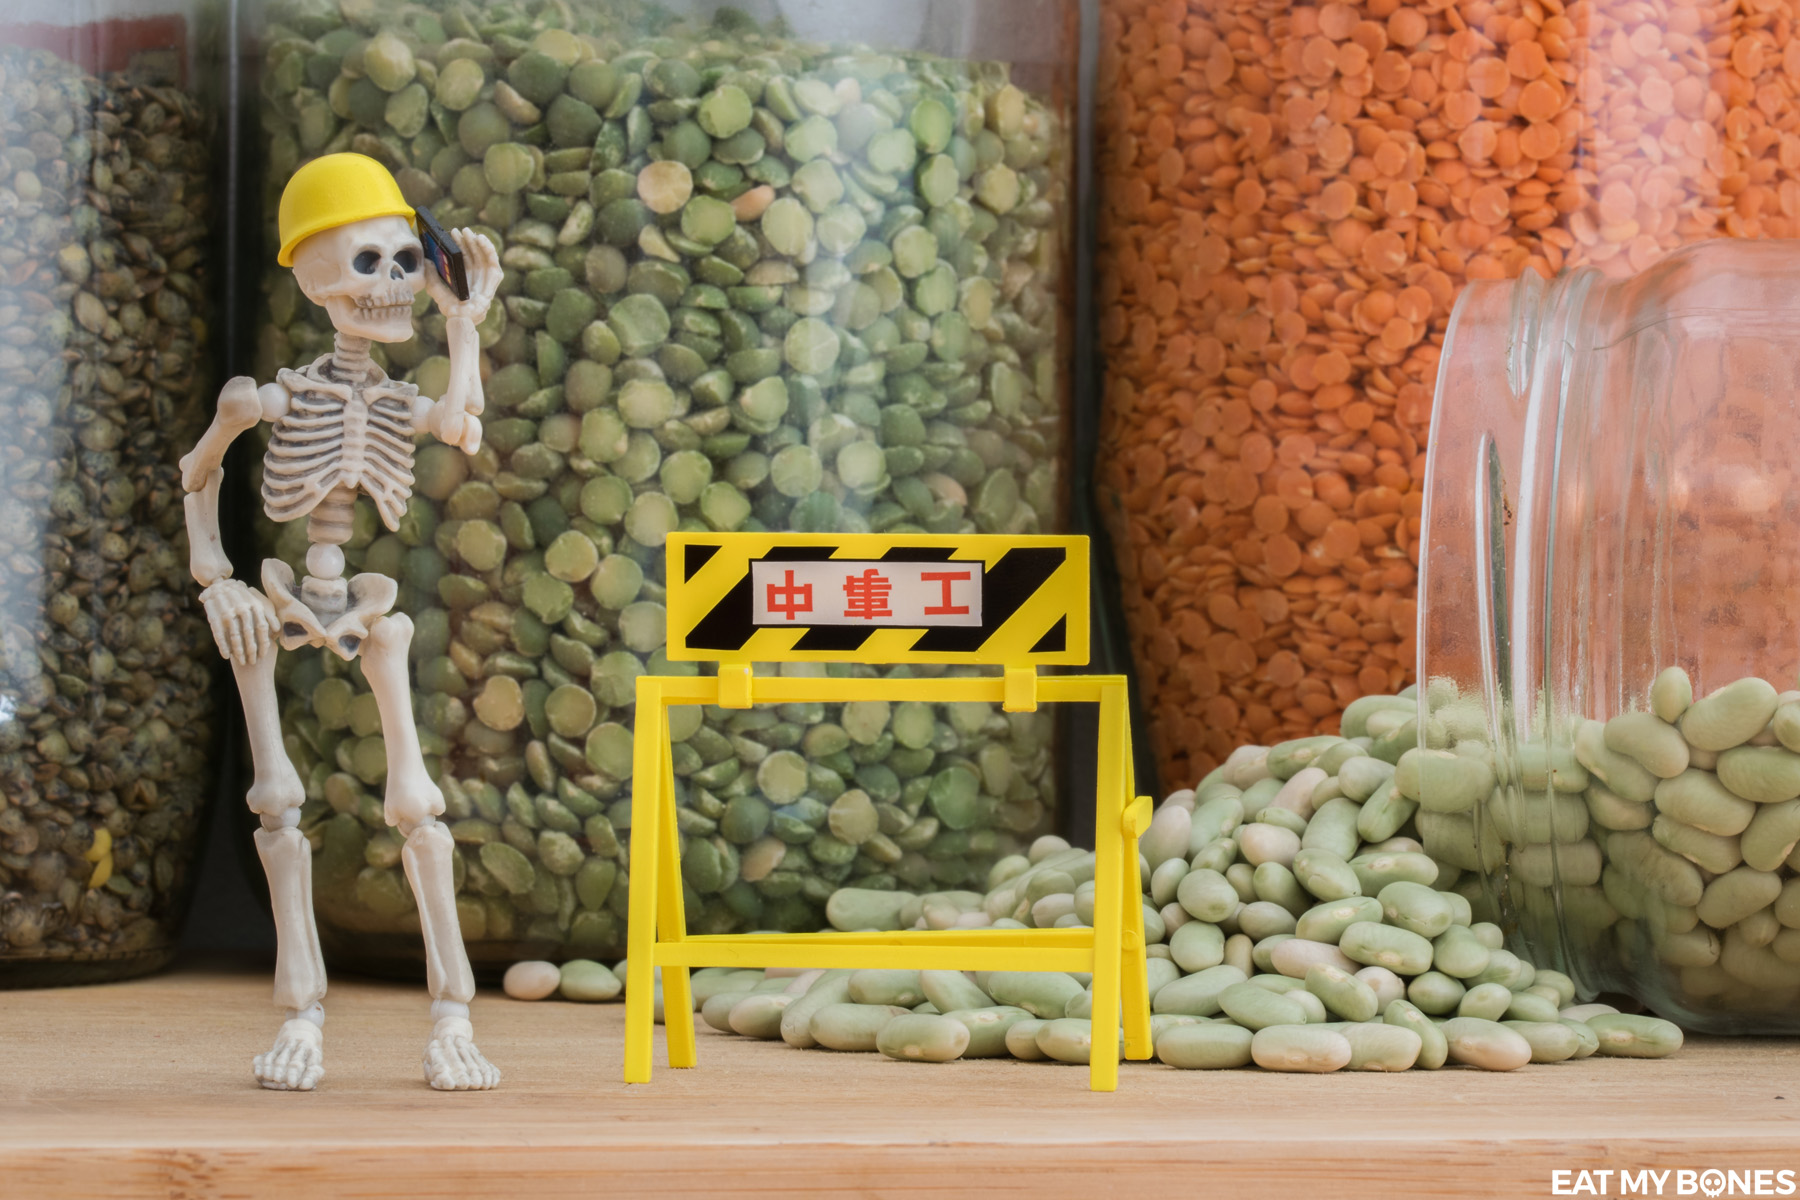 Security - Pose Skeleton - Toy photography - Miniature - Eat my Bones